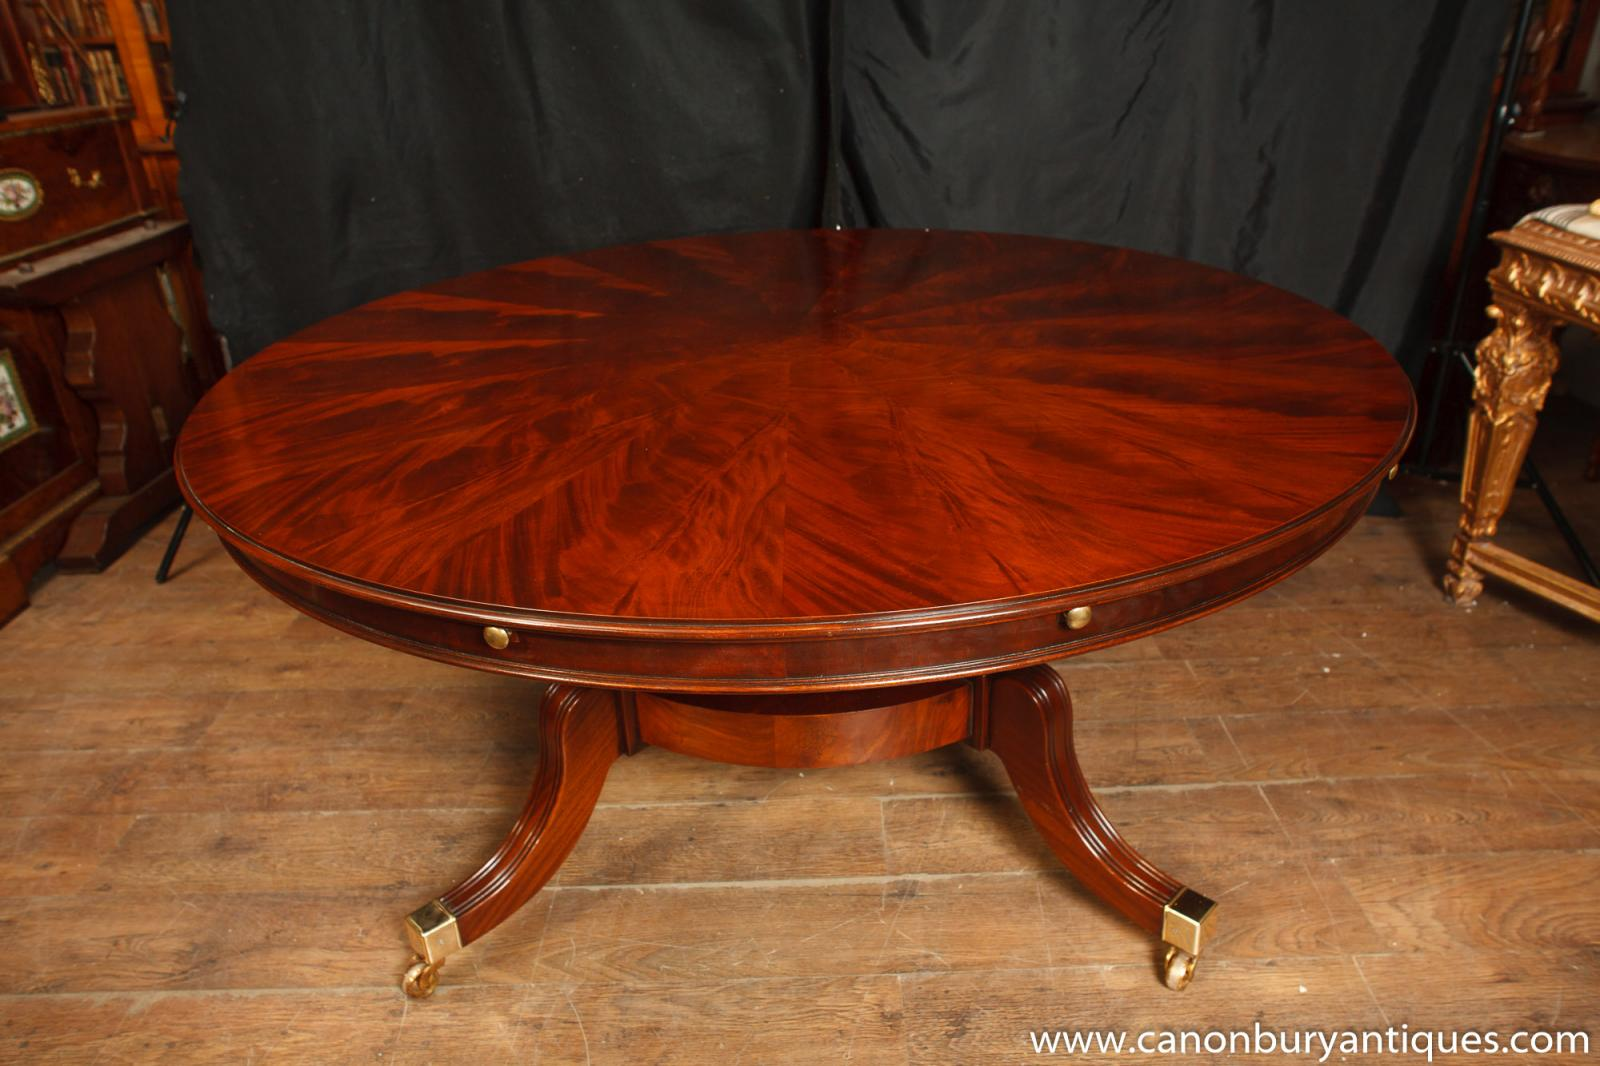 About Regency Jupes Table Round Expanding Dining Tables Jupe Furniture